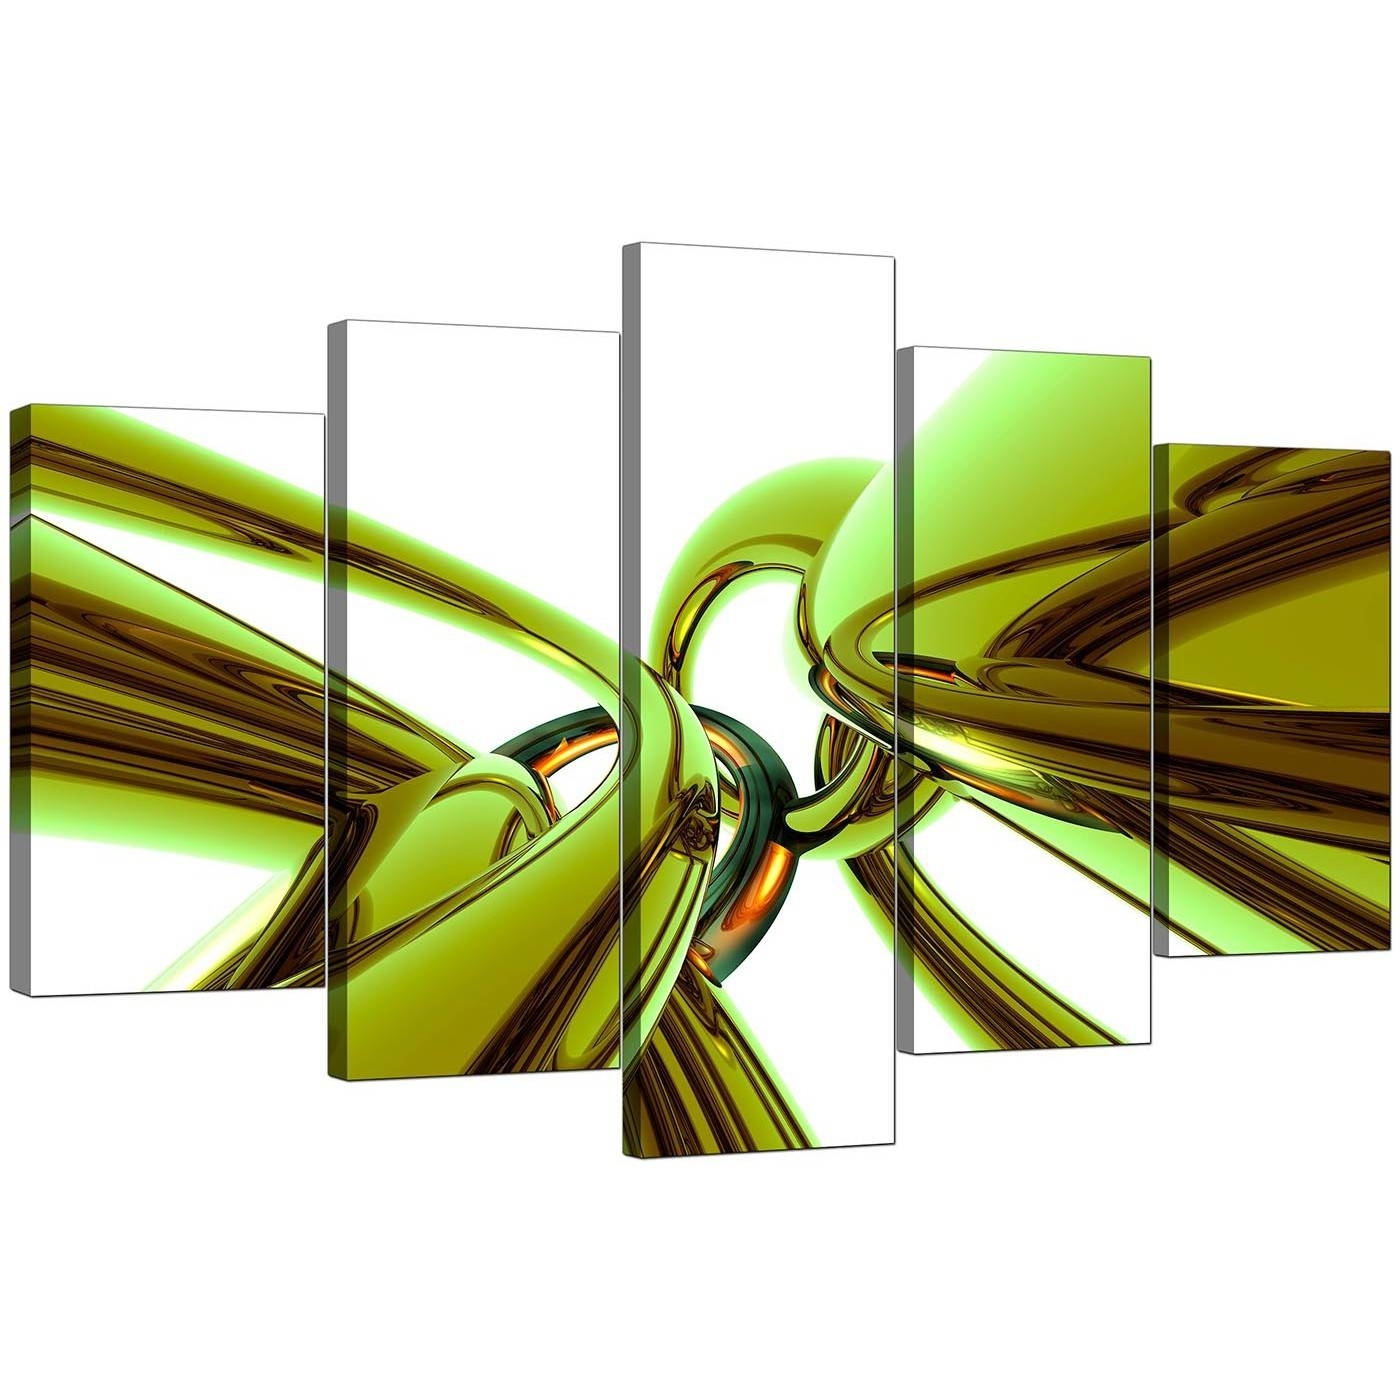 Extra Large Green Abstract Canvas Prints Uk – 5 Piece Throughout 2018 Large Green Wall Art (Gallery 7 of 20)